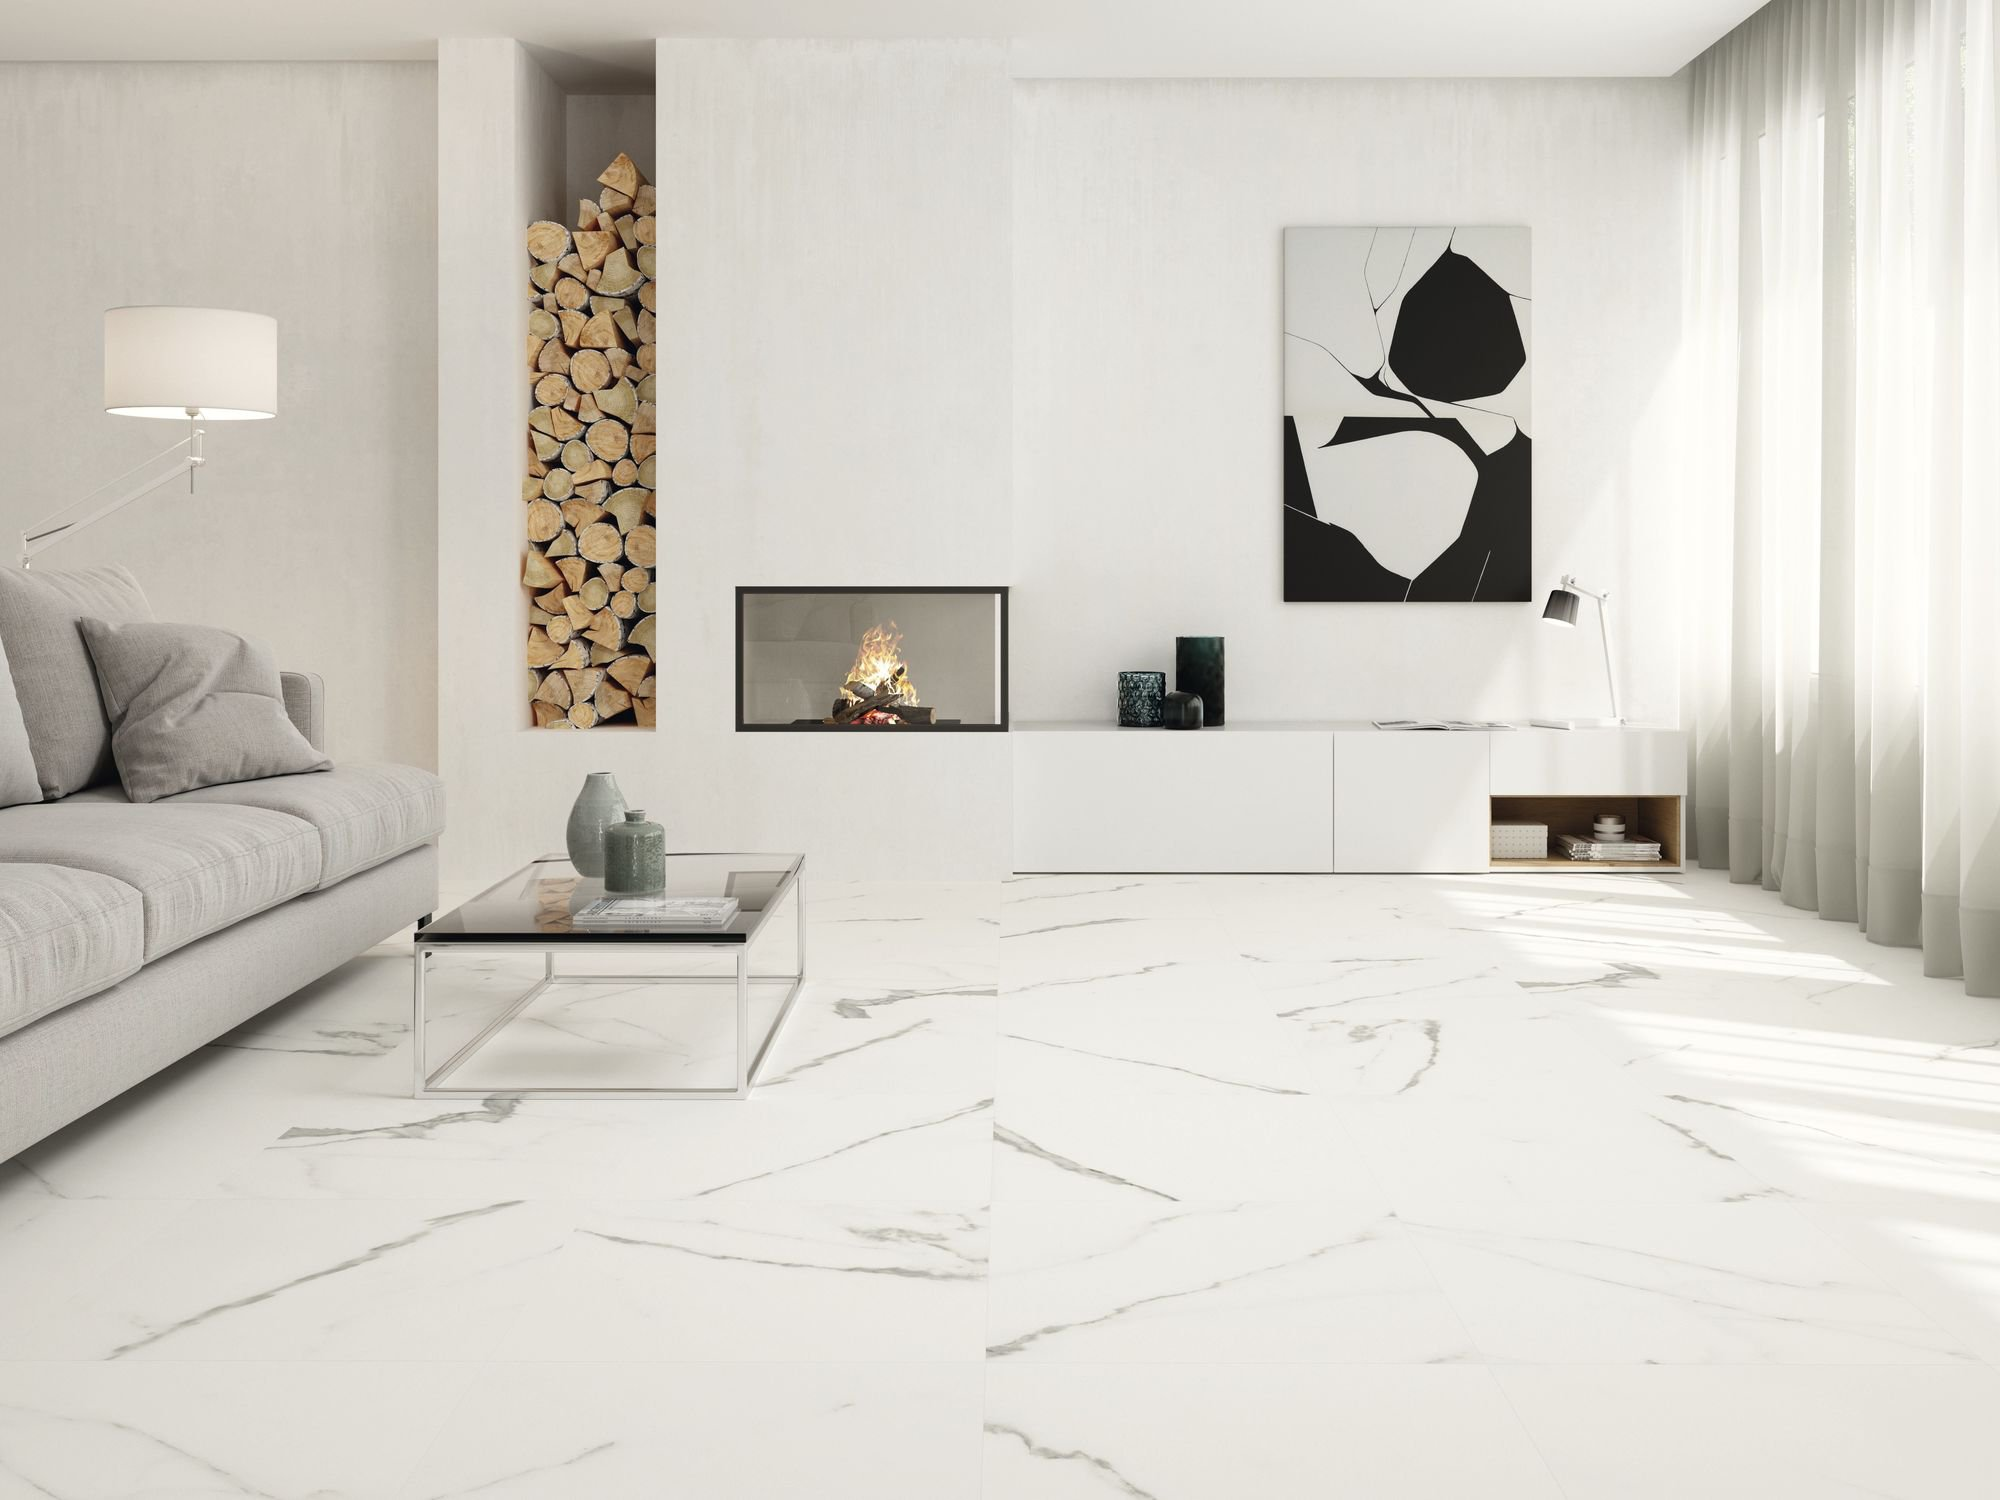 Glide_GLD01N_White Carrara_Matt_600x600_Living [1].jpg